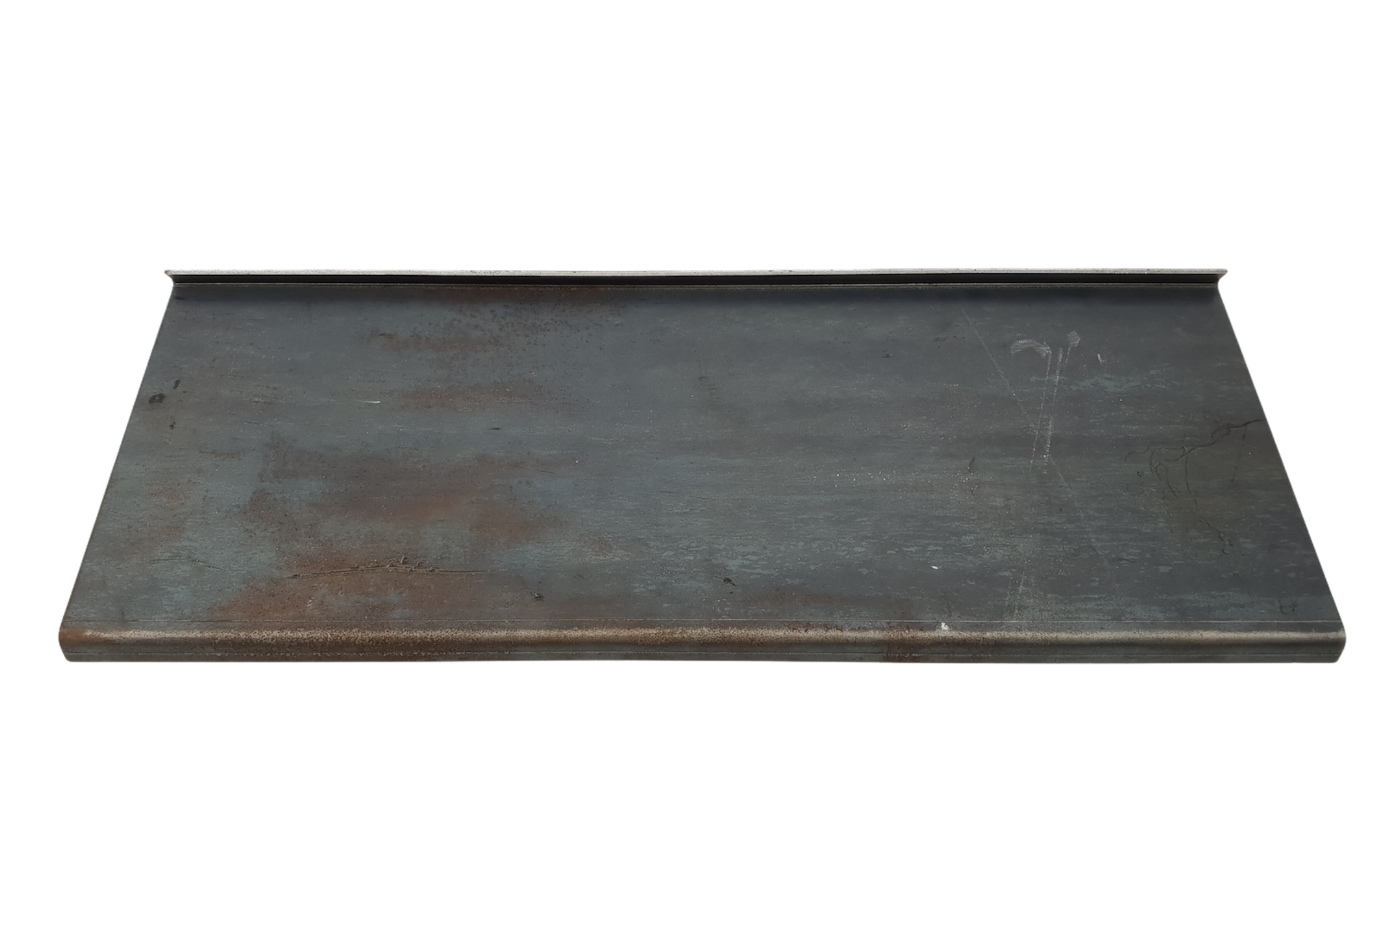 A baffle plate suitable for an Esse 100 stove.